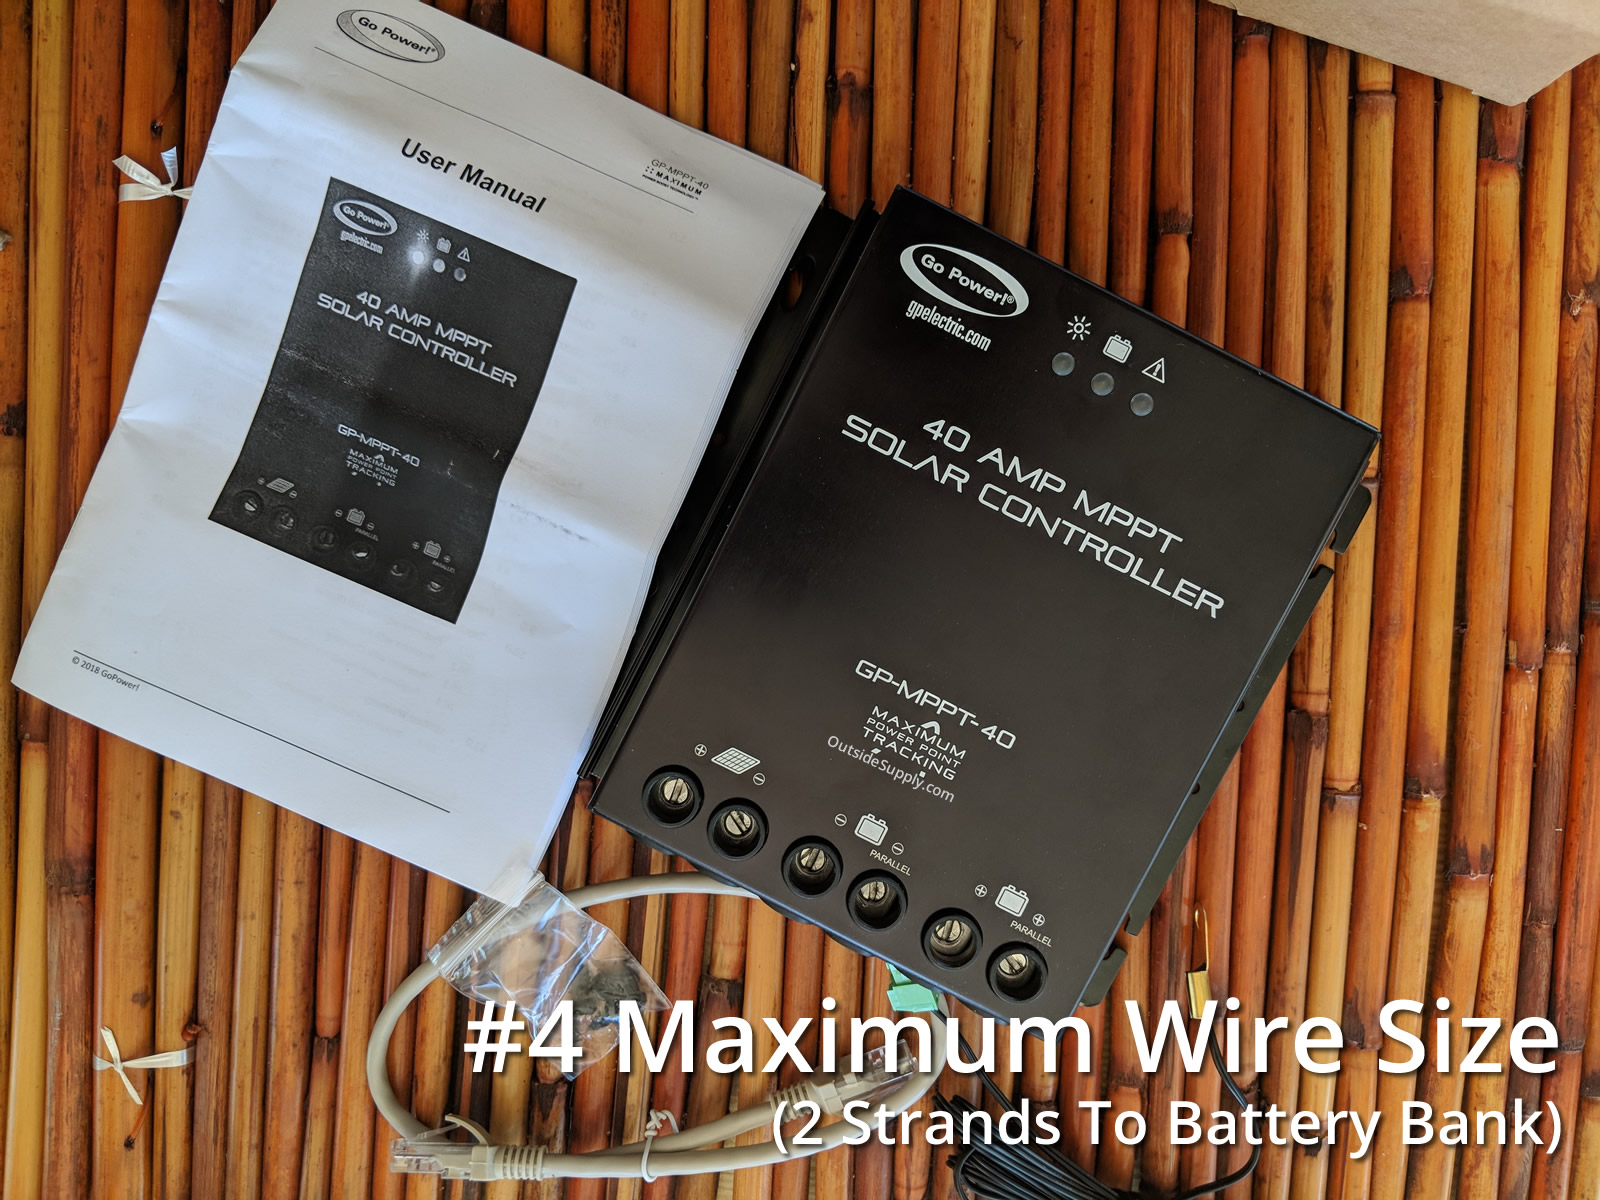 Maximum wire size to house battery is #4, but can use 2 strands.